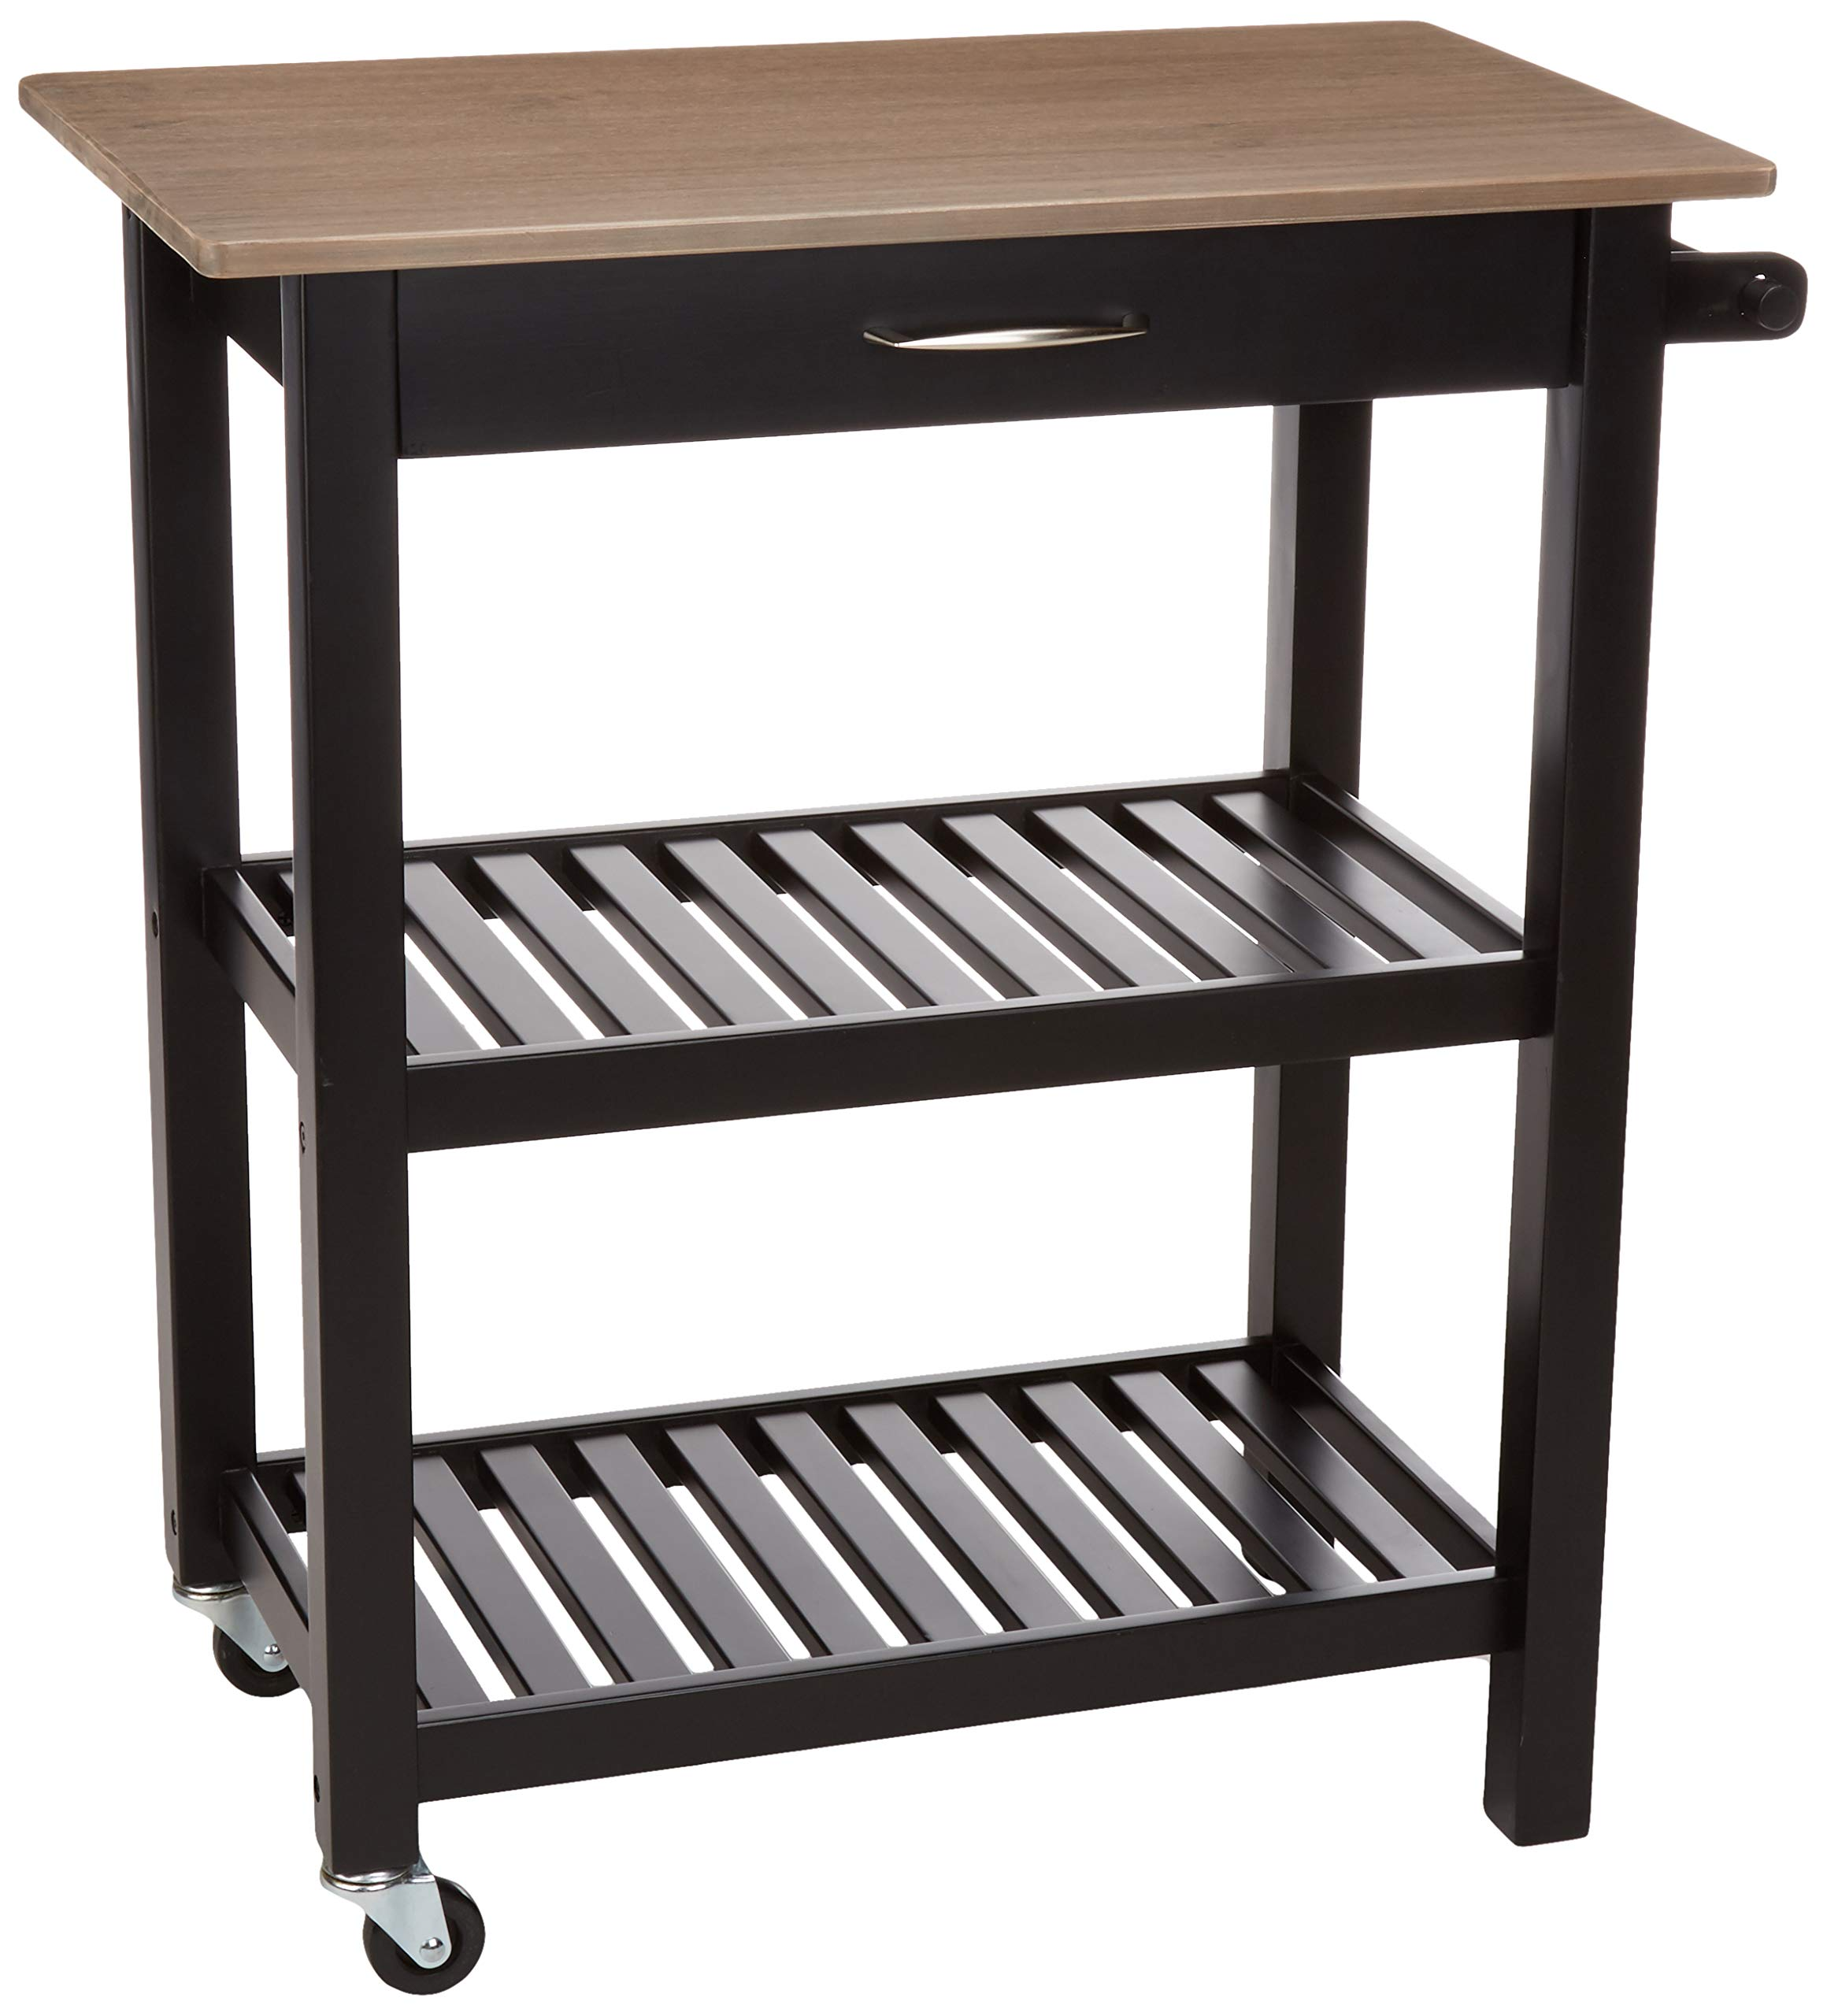 Amazon Com Amazon Basics Multifunction Rolling Kitchen Cart Island With Open Shelves Reclaimed Grey And Black Furniture Decor